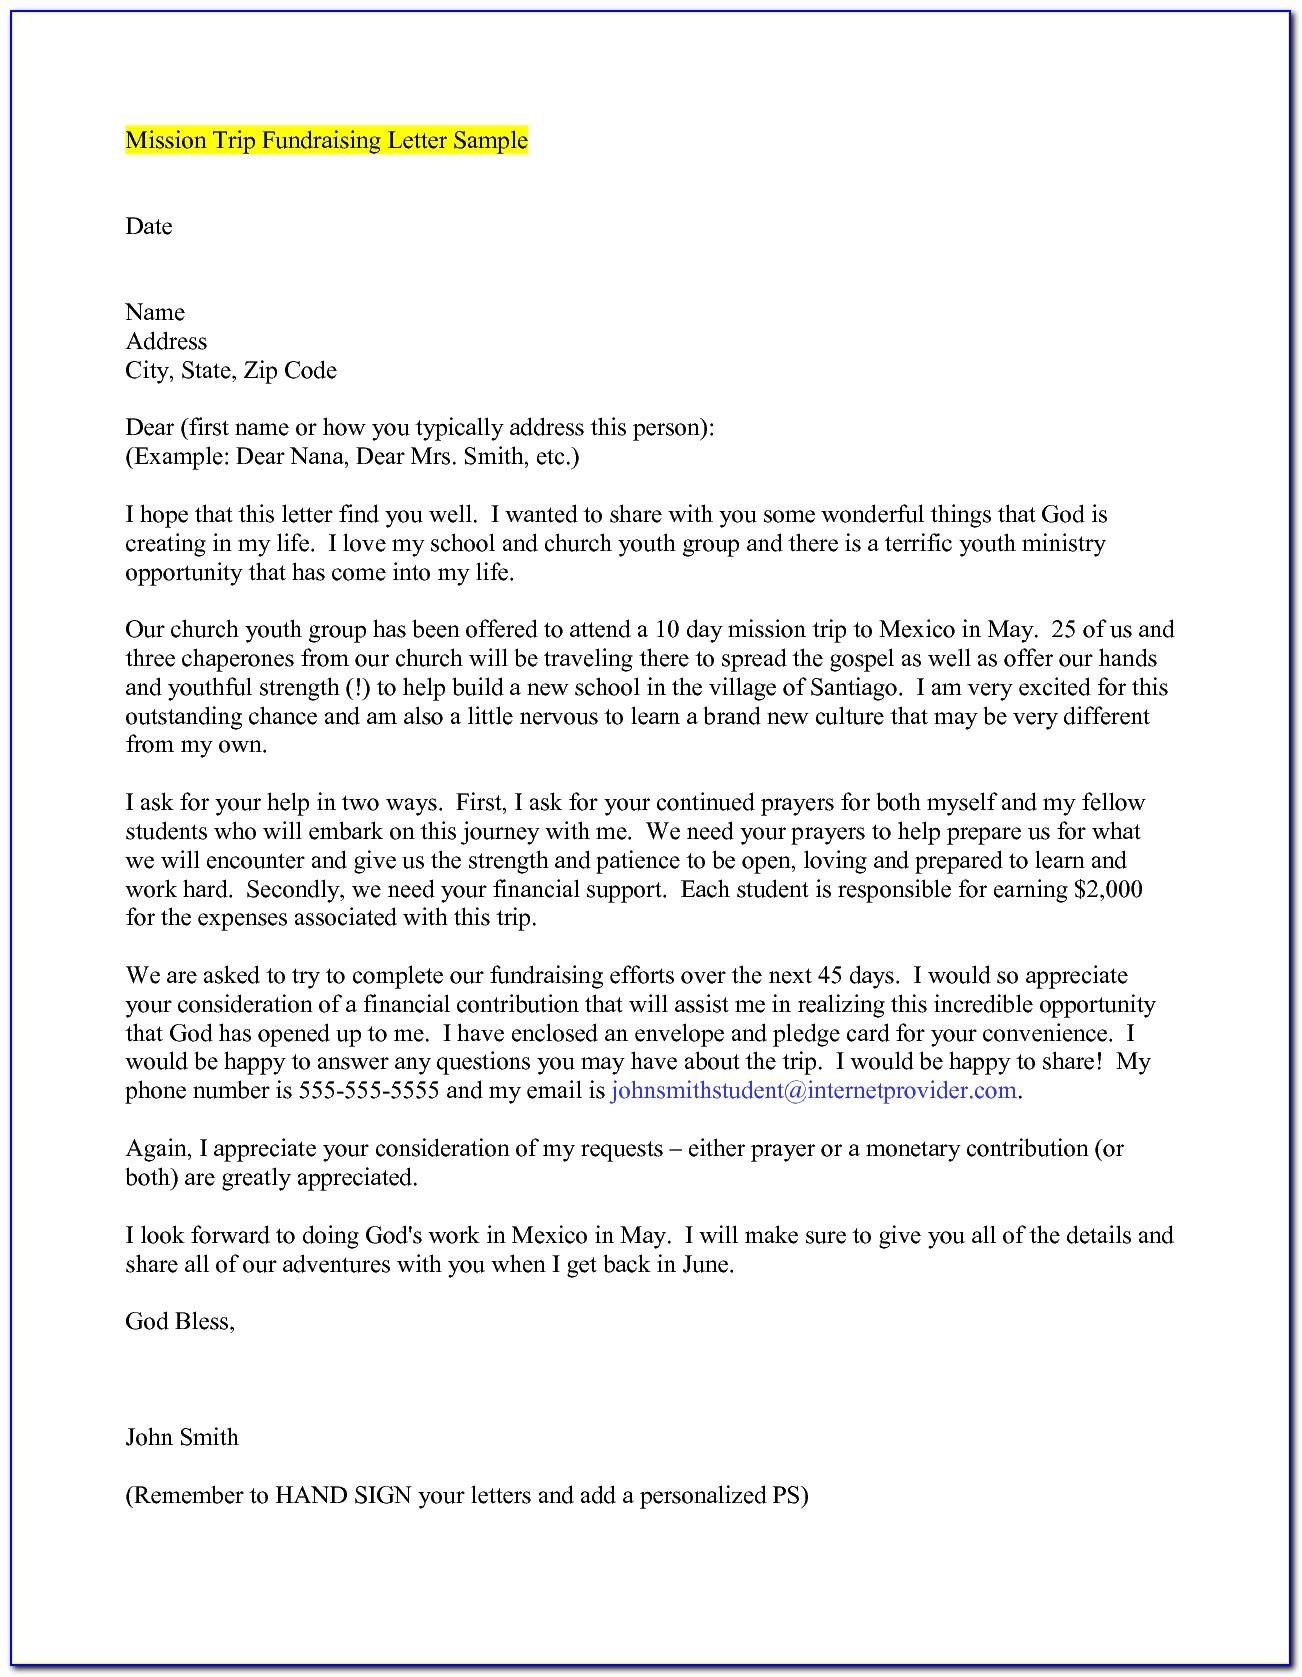 Mission Trip Fundraising Letter Example